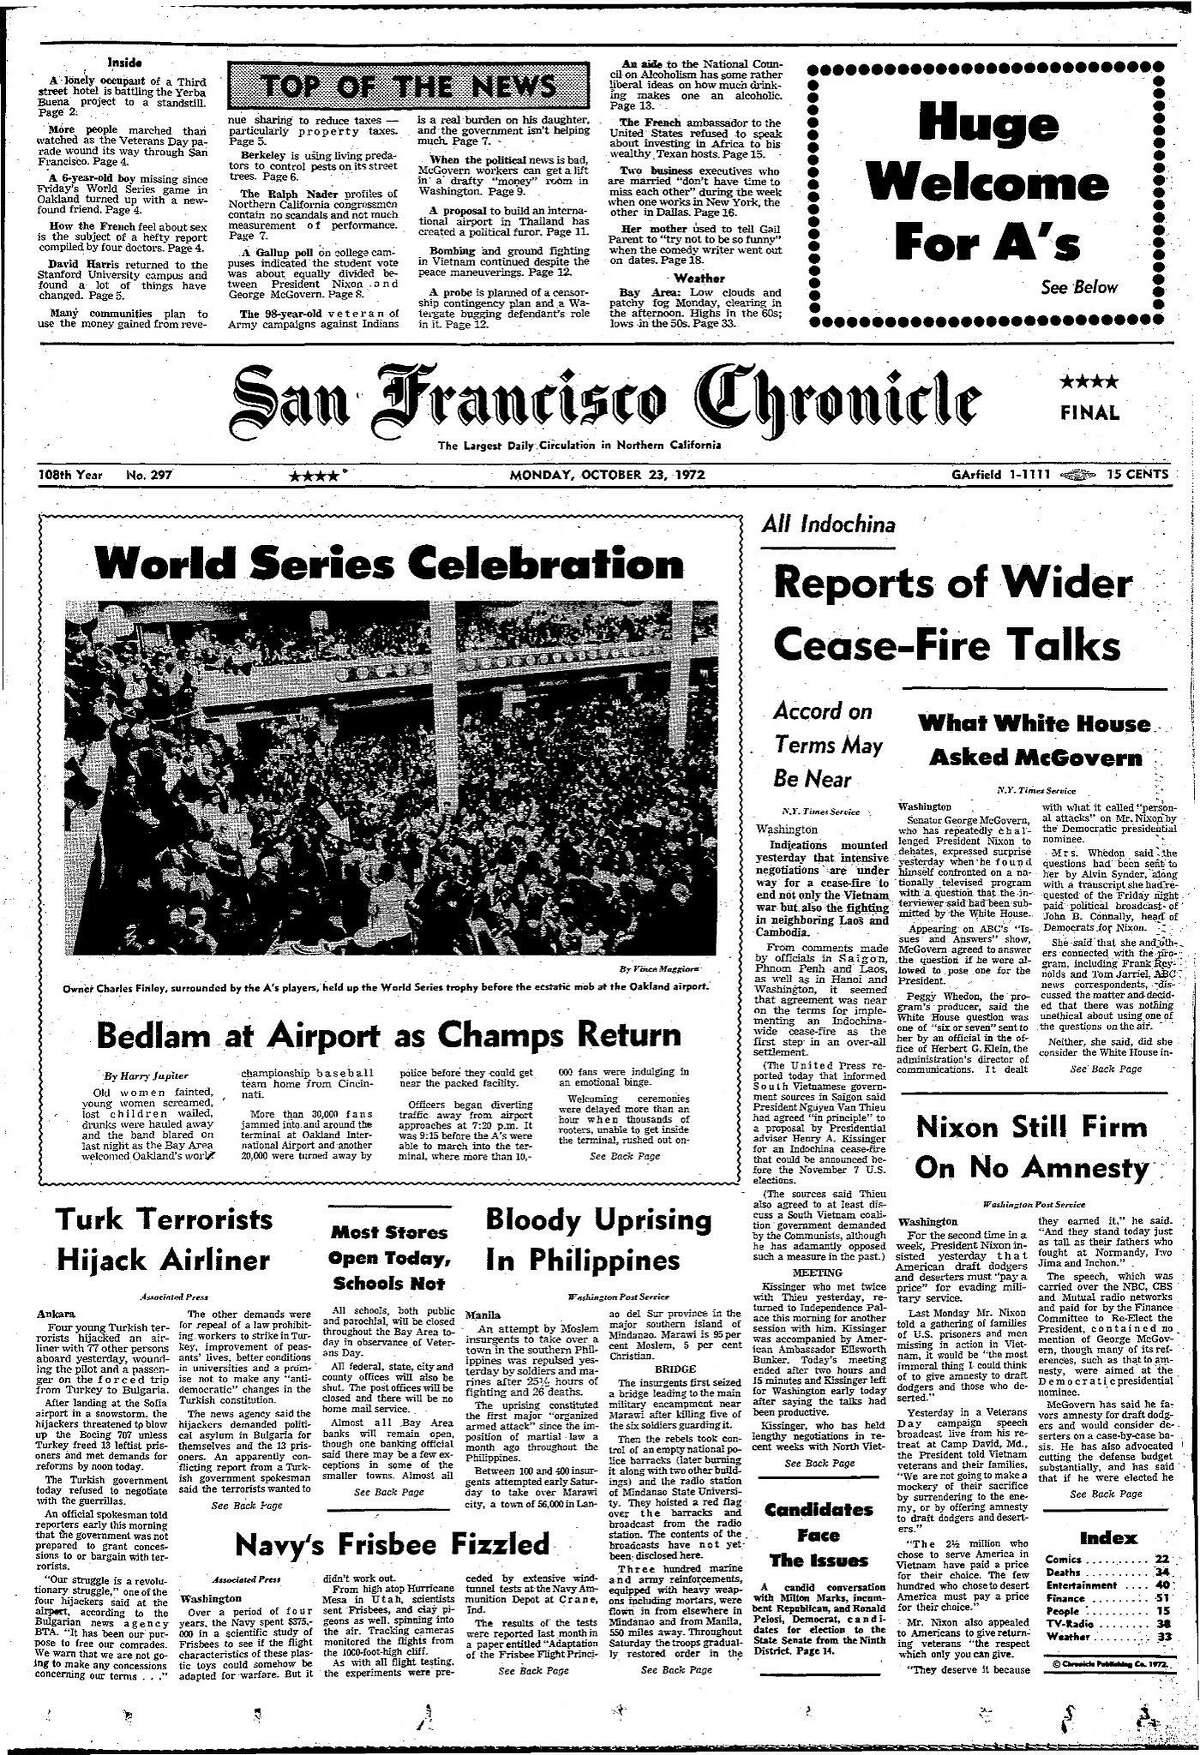 Historic Chronicle Front Page October 23, 1972 Oakland A's win the World Series Chron365, Chroncover